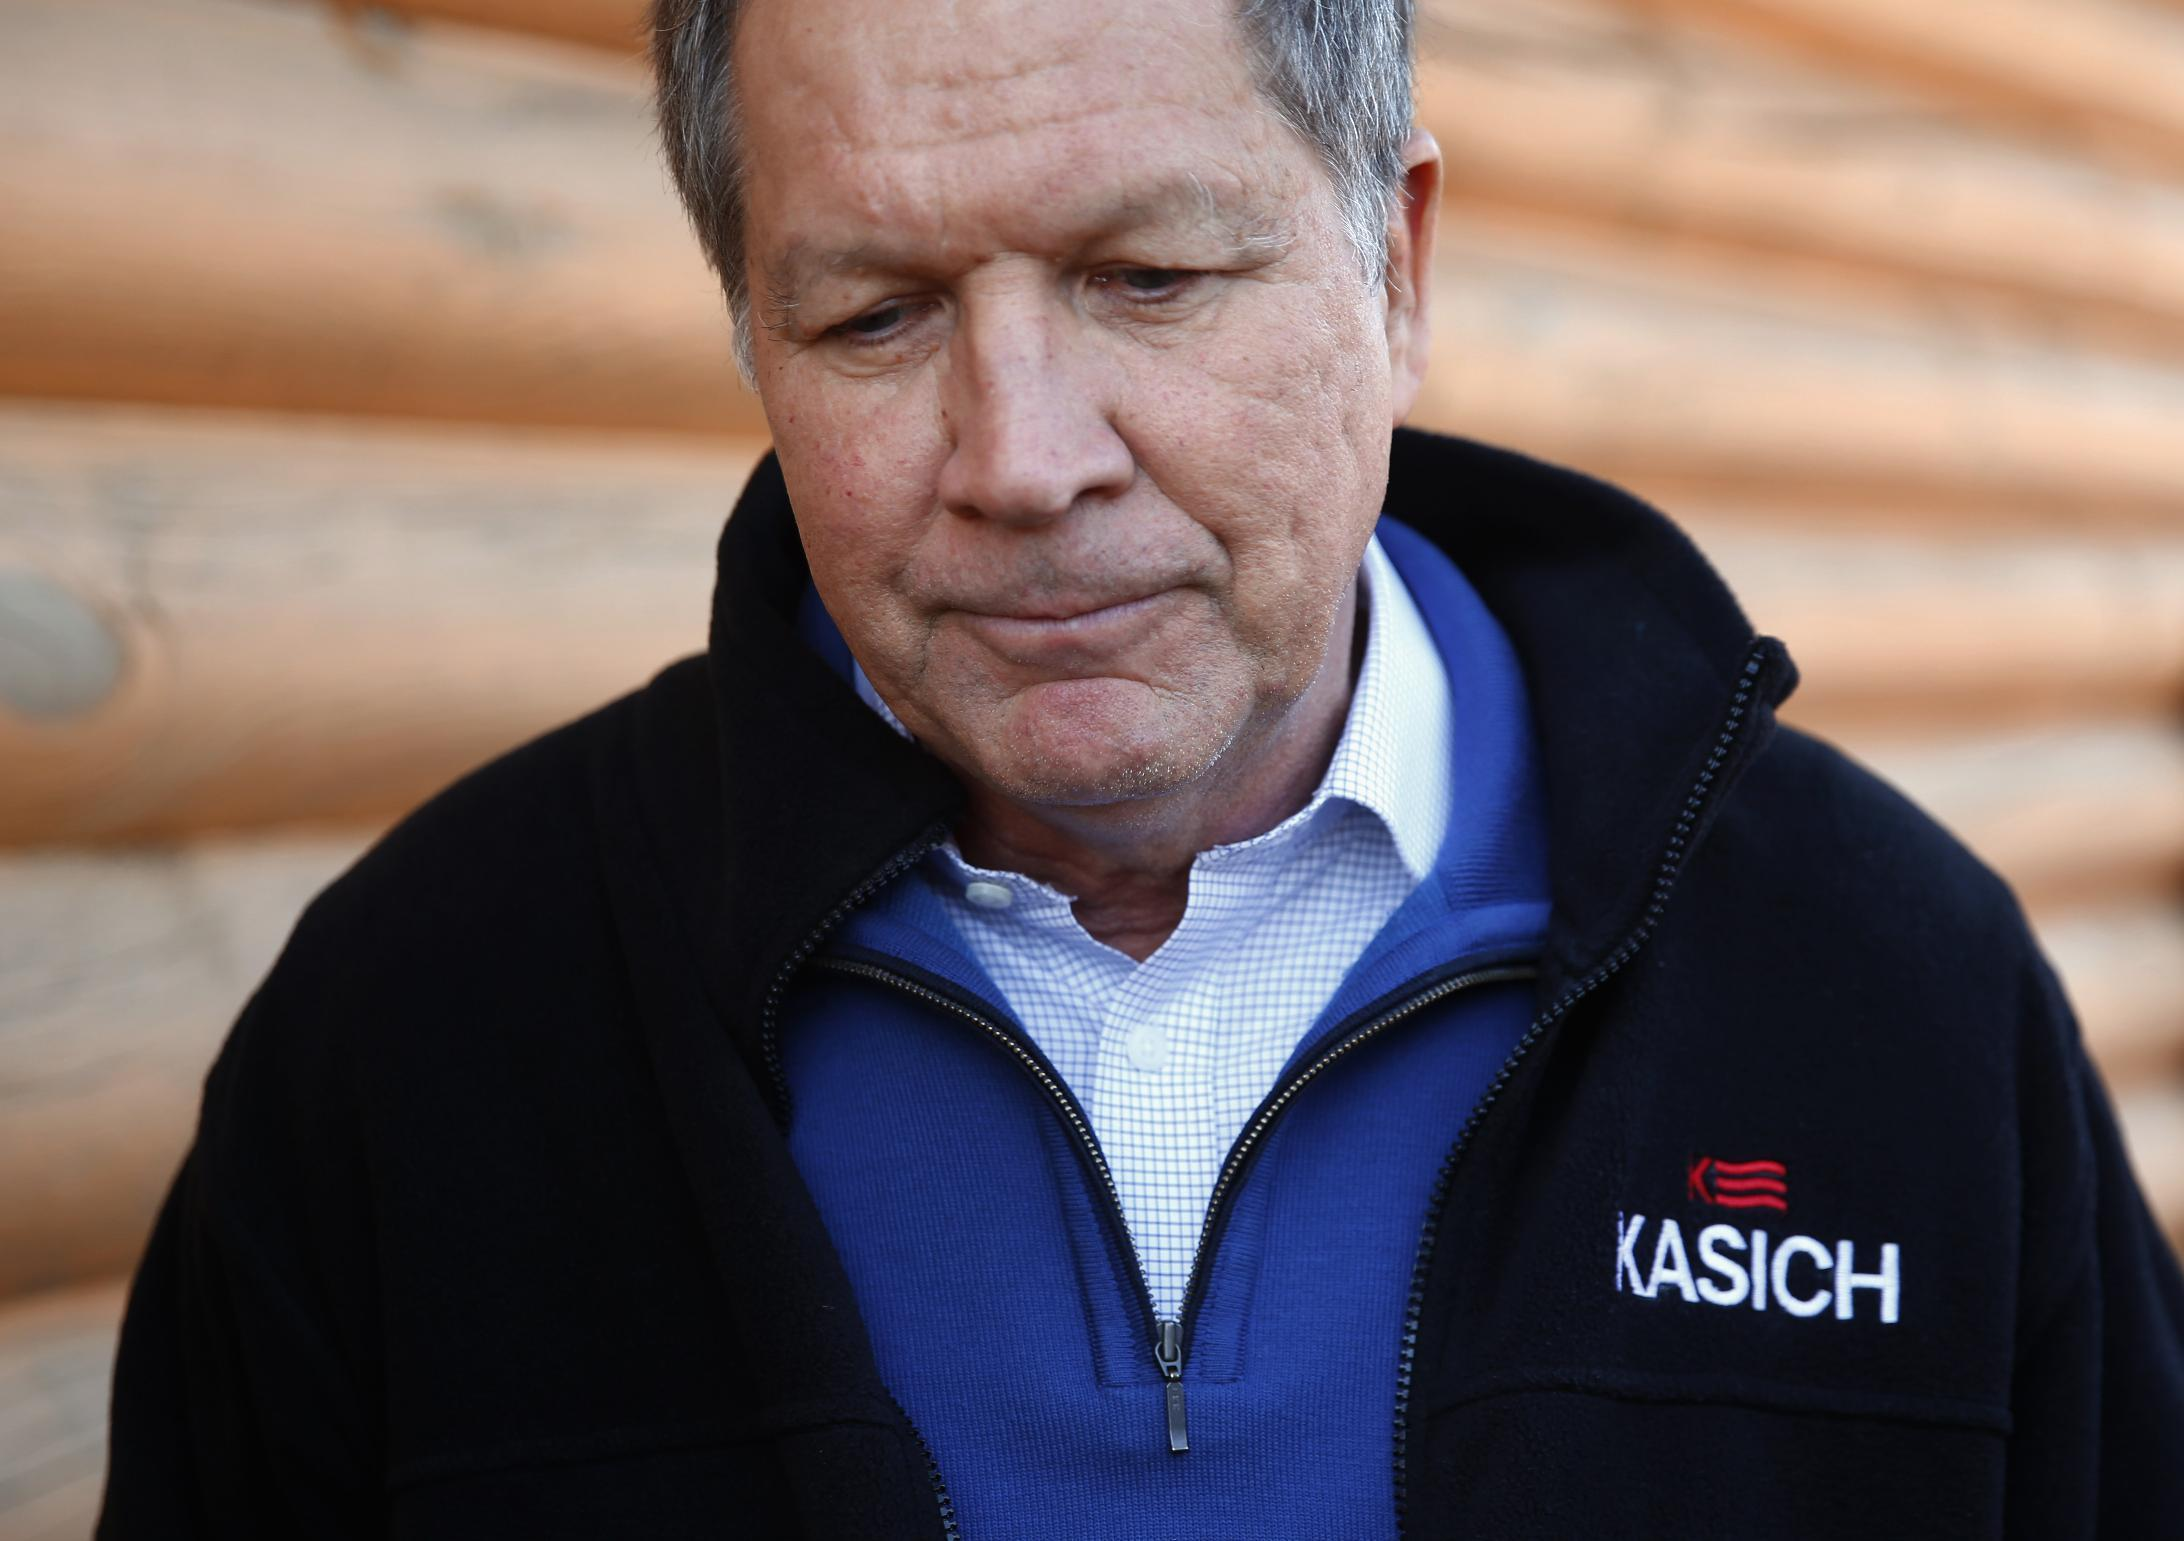 The Latest: Group backing Bush hits Kasich over defense